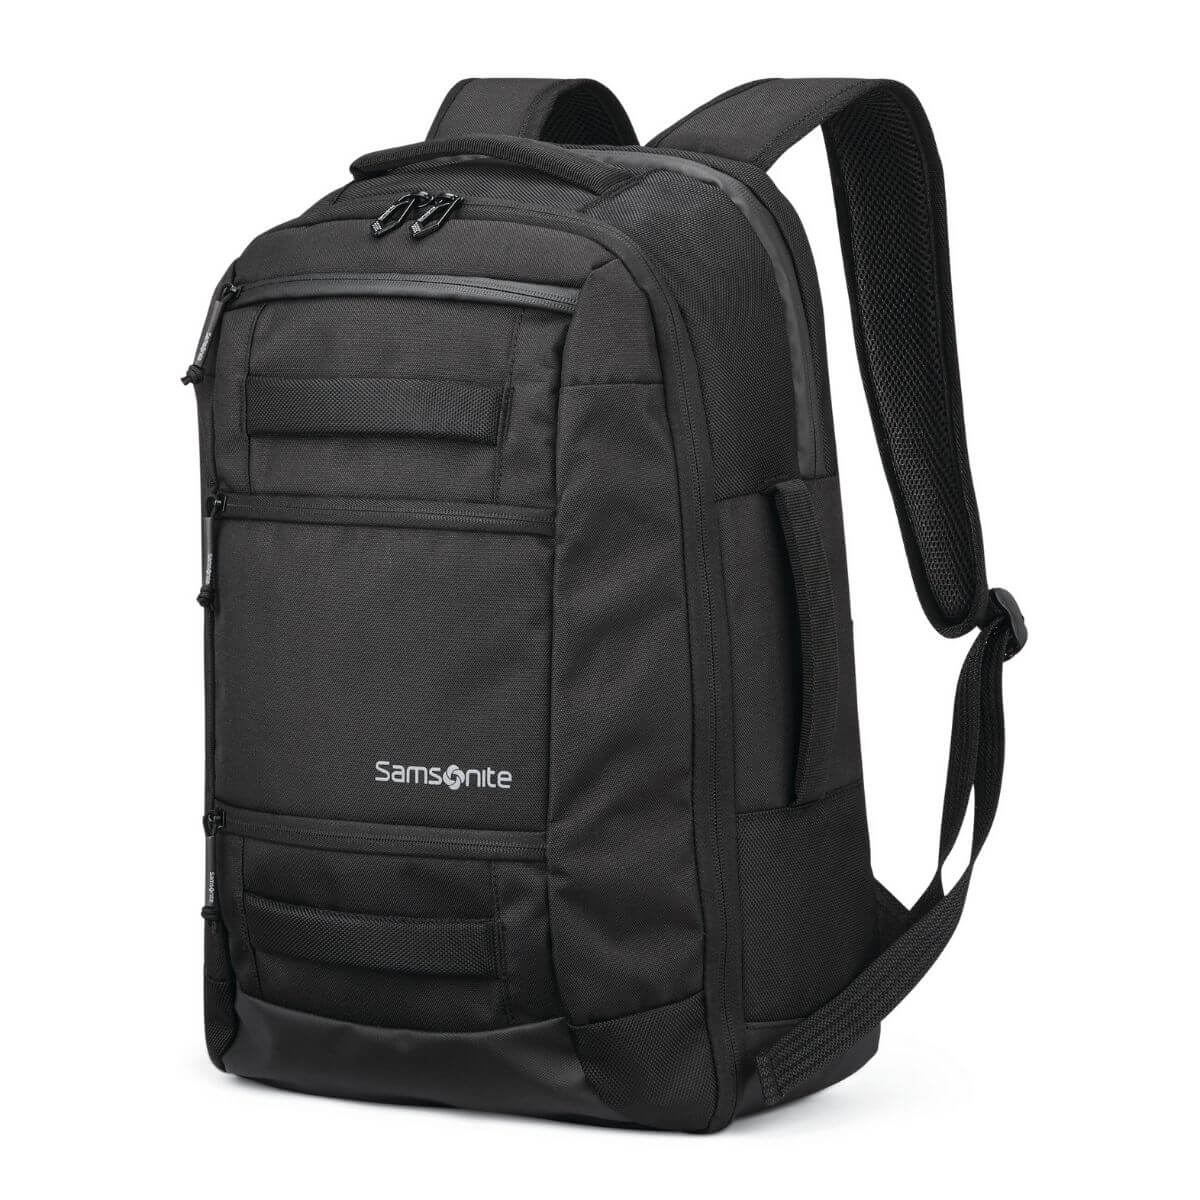 Black Samsonite backpack.